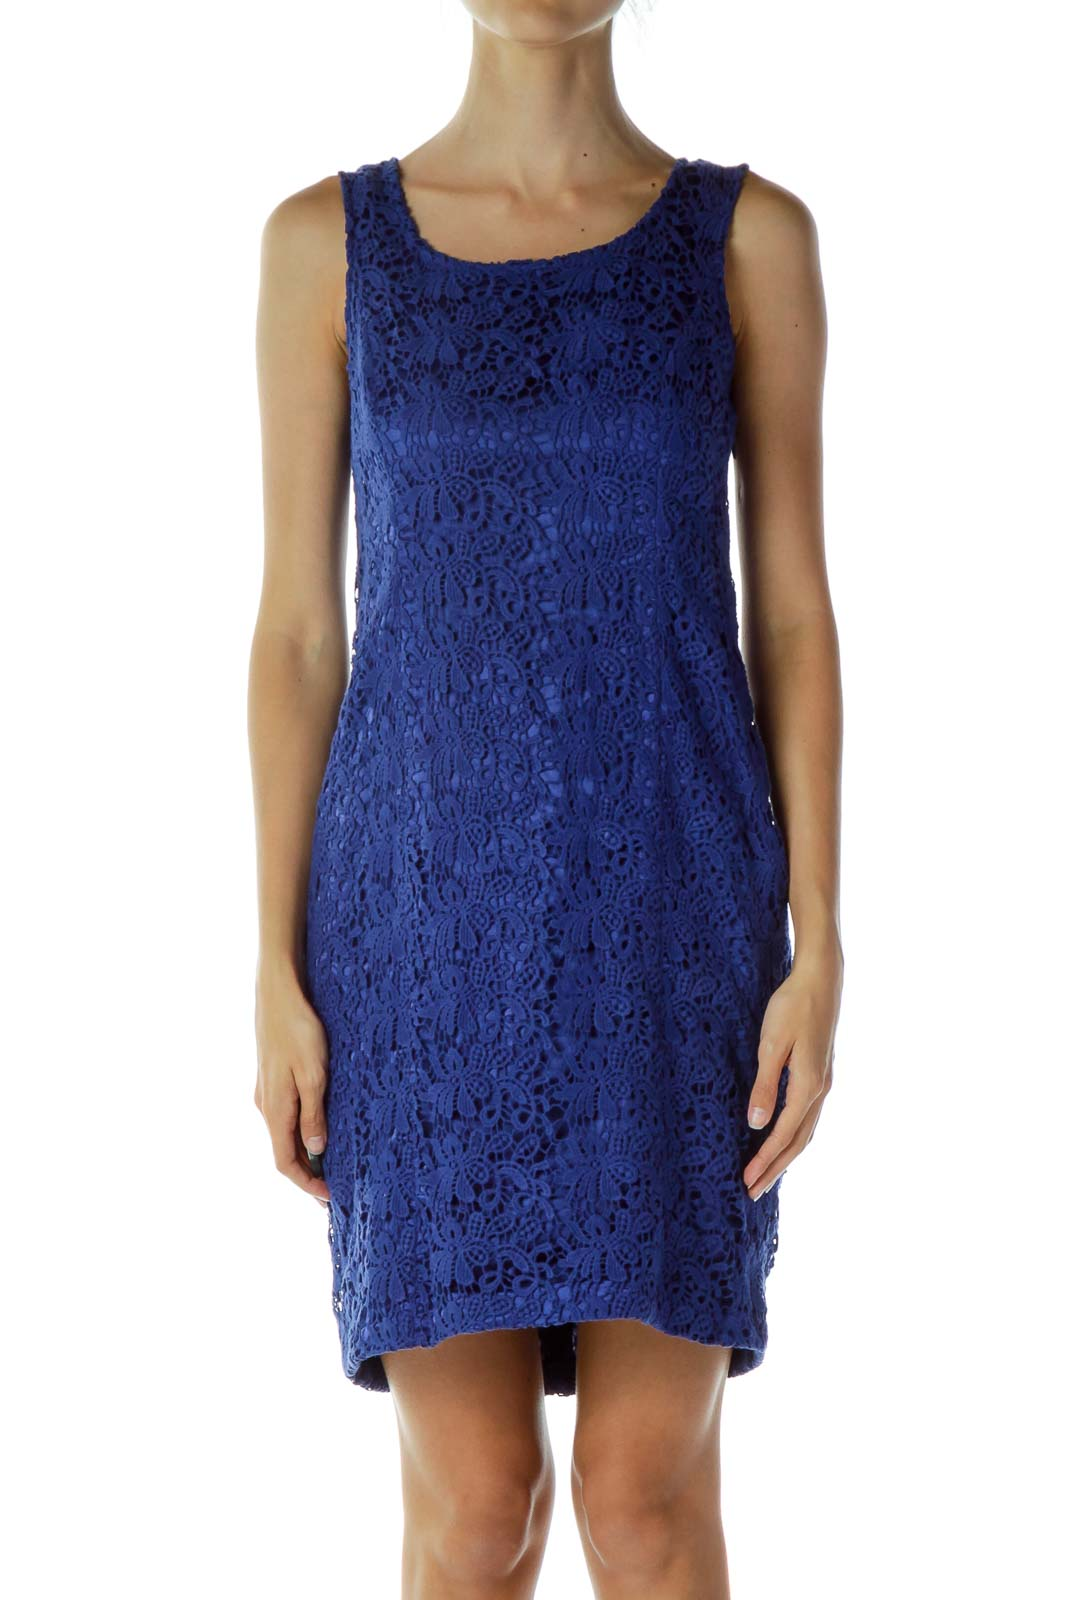 Blue Crocheted Cocktail Dress